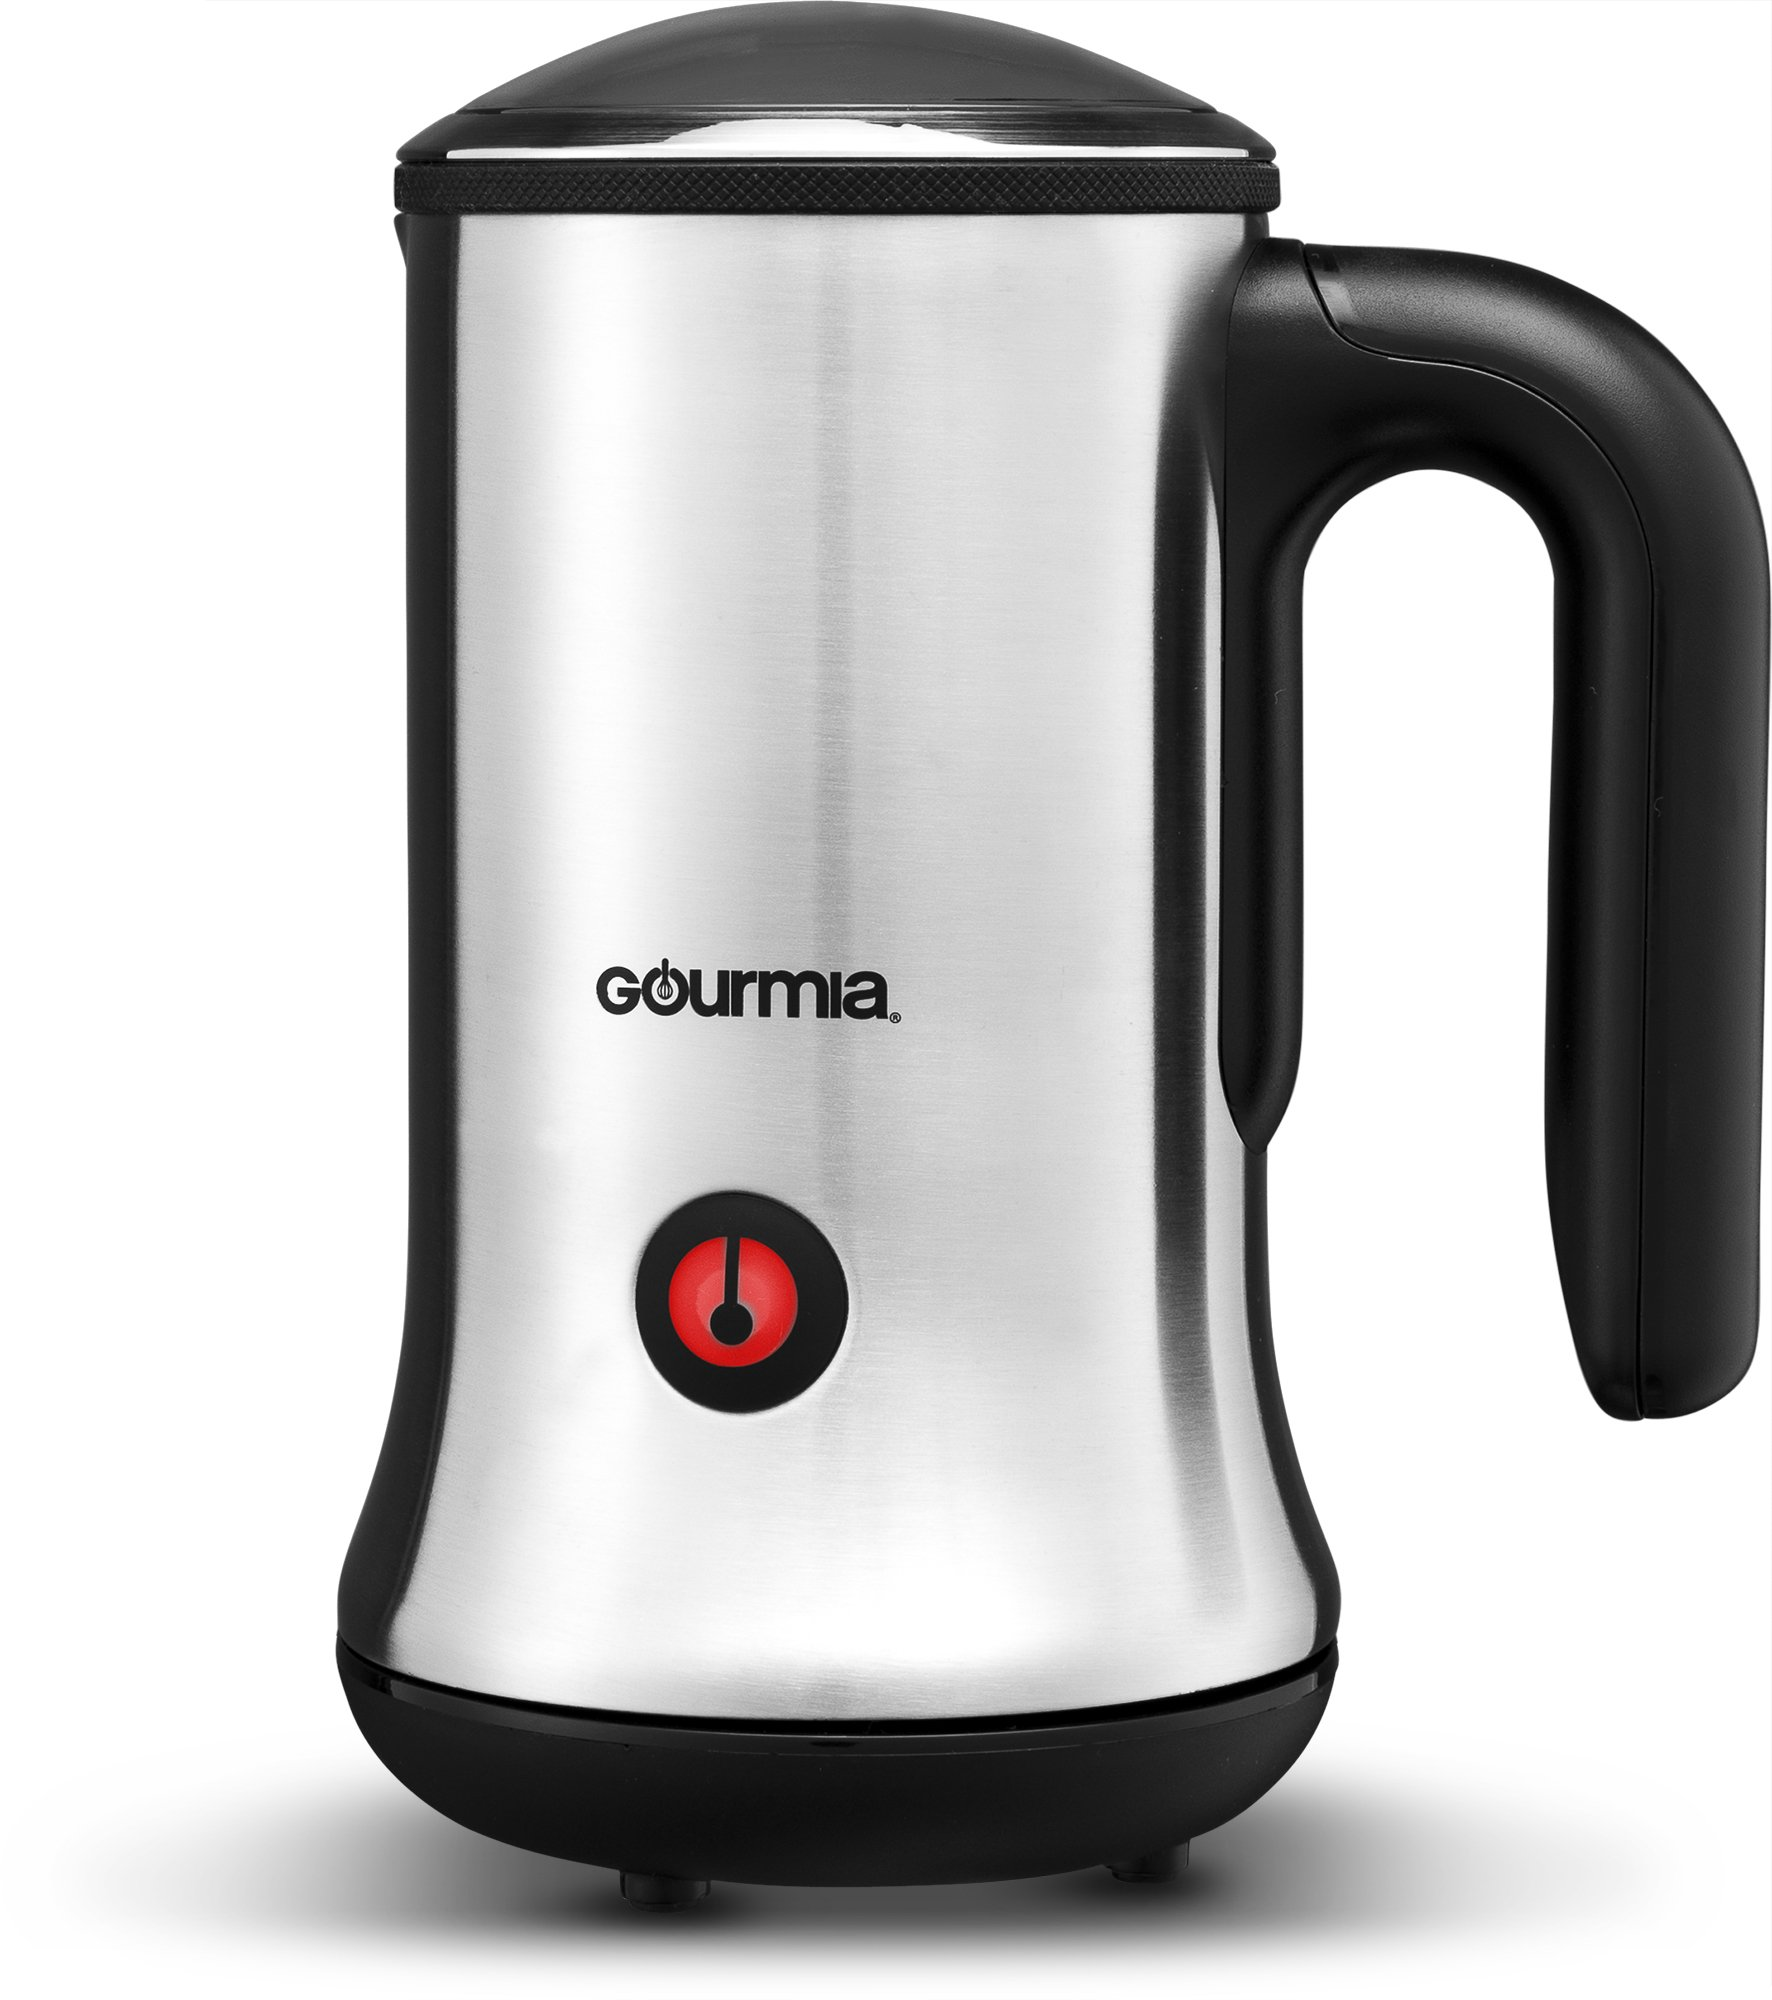 Gourmia GMF245 Cordless Electric Milk Frother & Heater, Stainless Steel 3 Function Froth Maker for Lattes and Cappuccinos, and Milk Heater